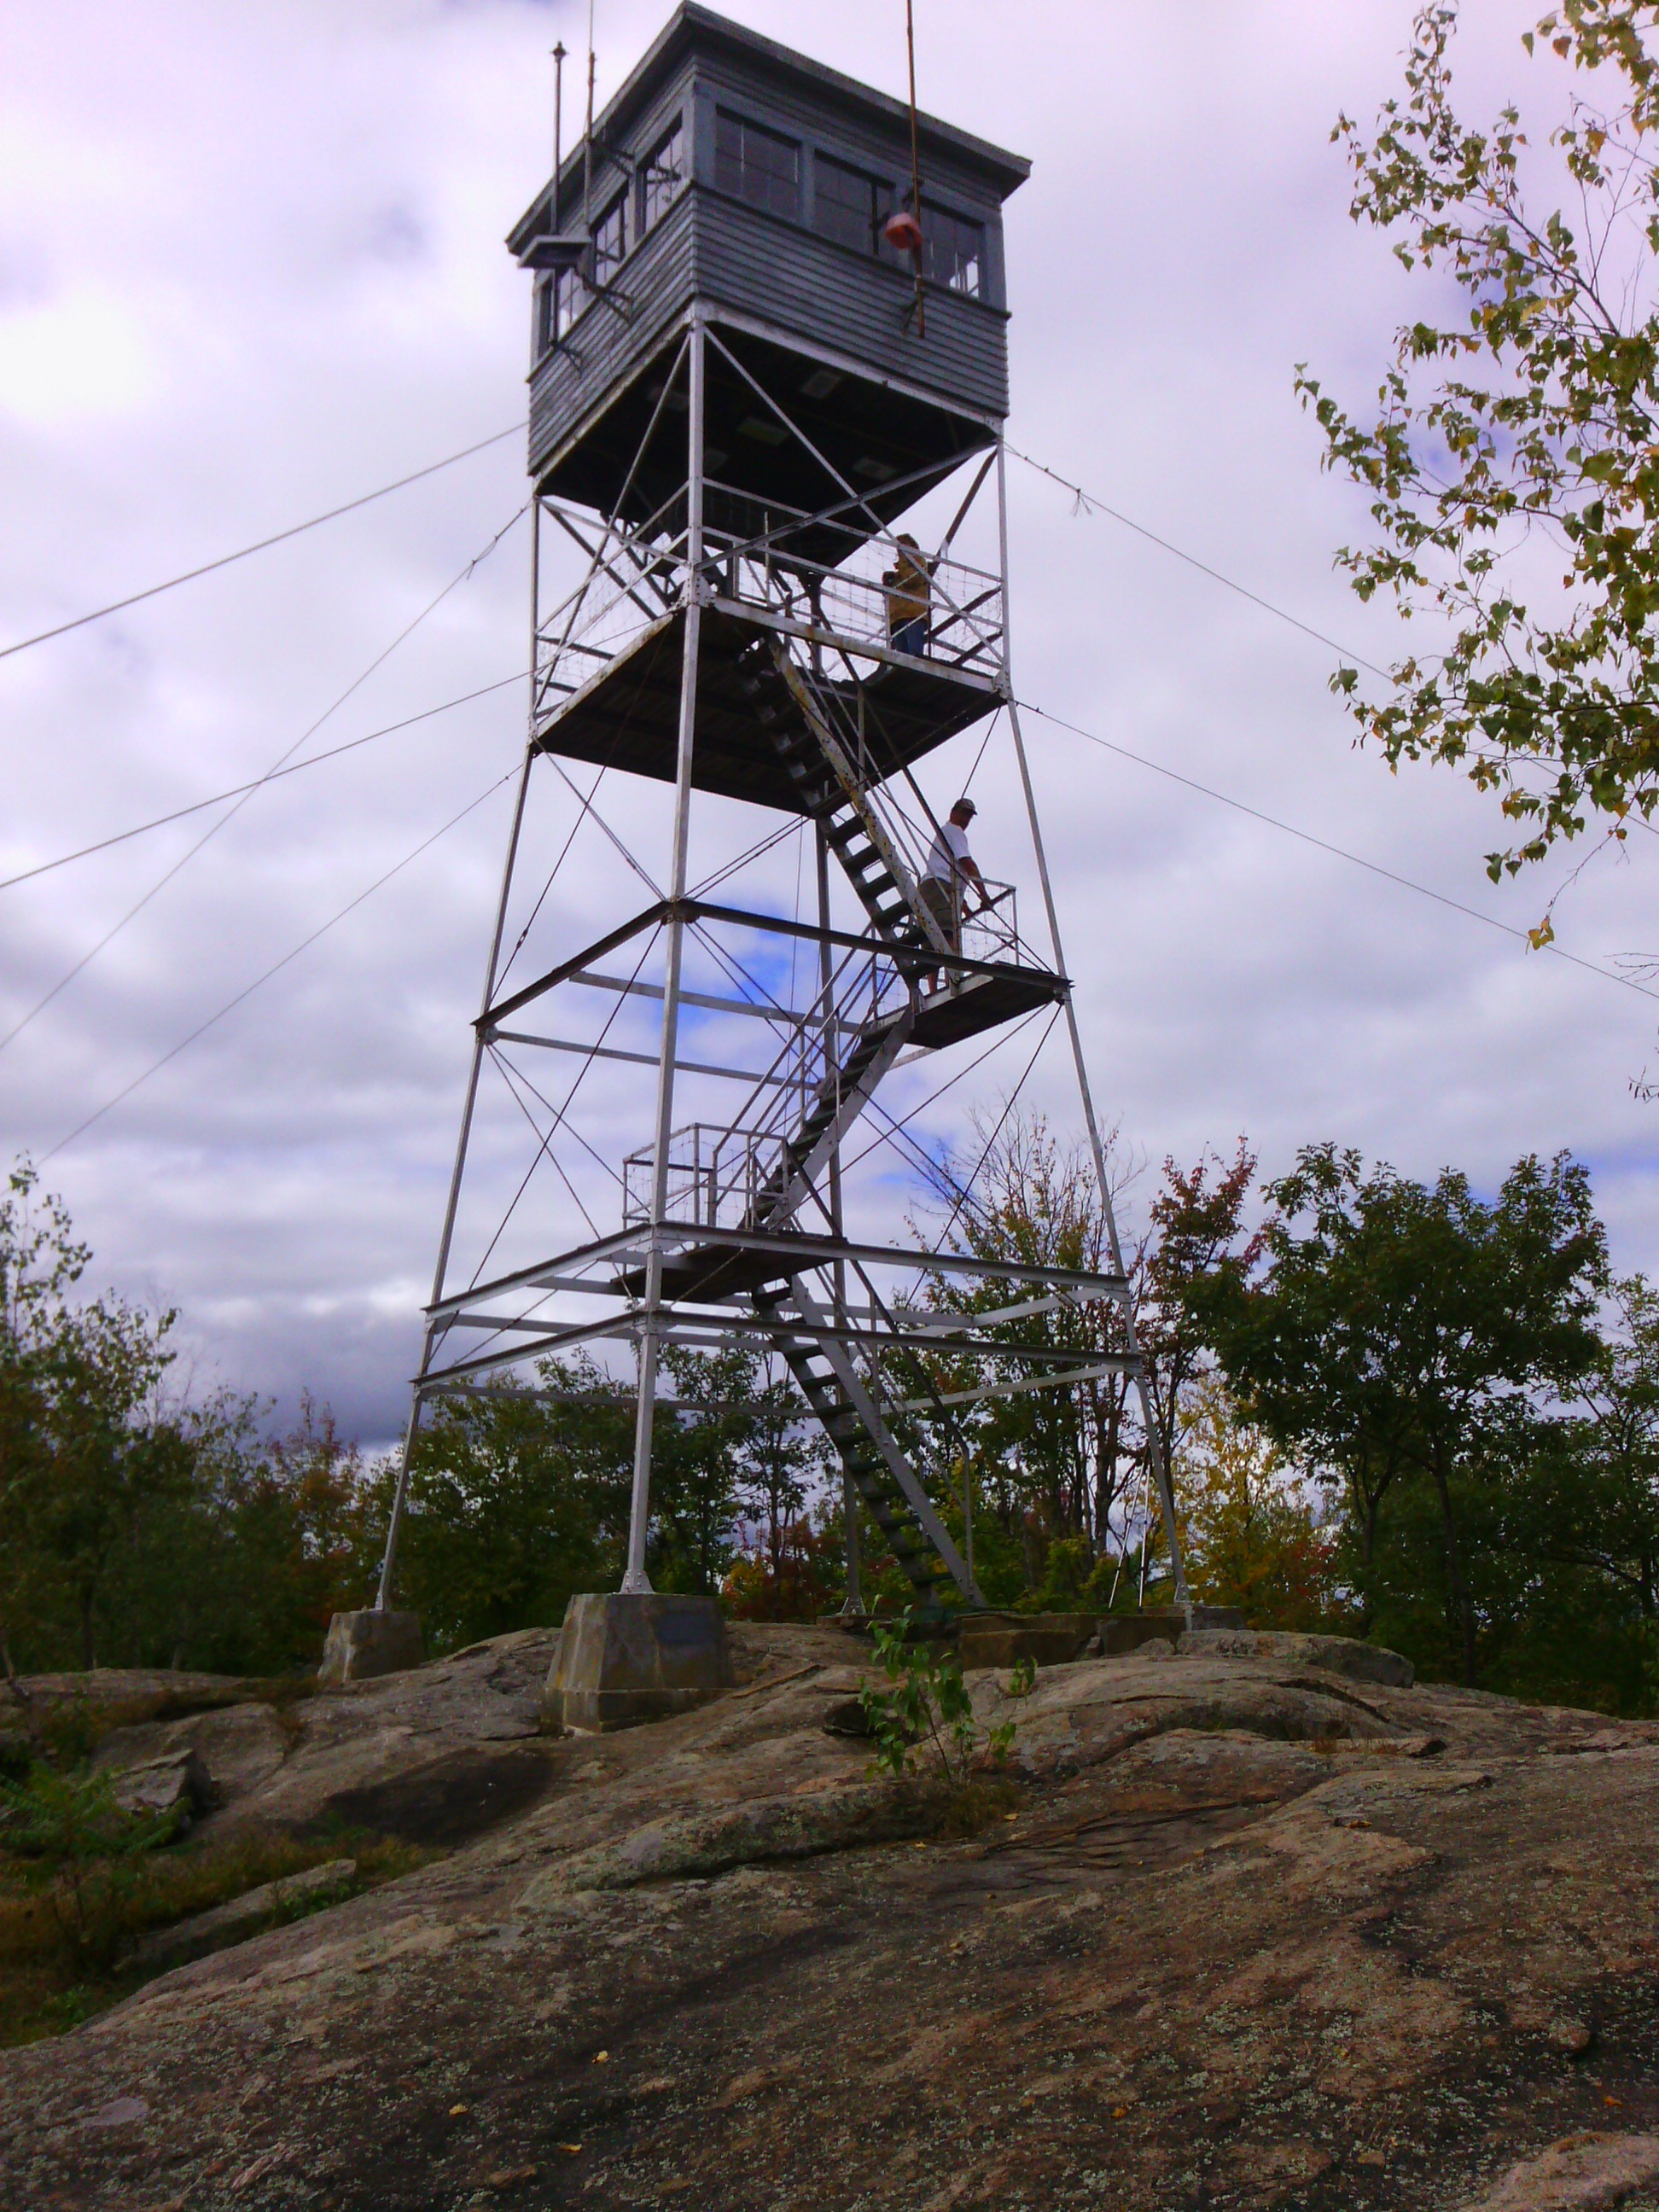 Pawtuckaway fire tower. Barely visible on the underside of the cab are charts describing the landmarks in each direction.